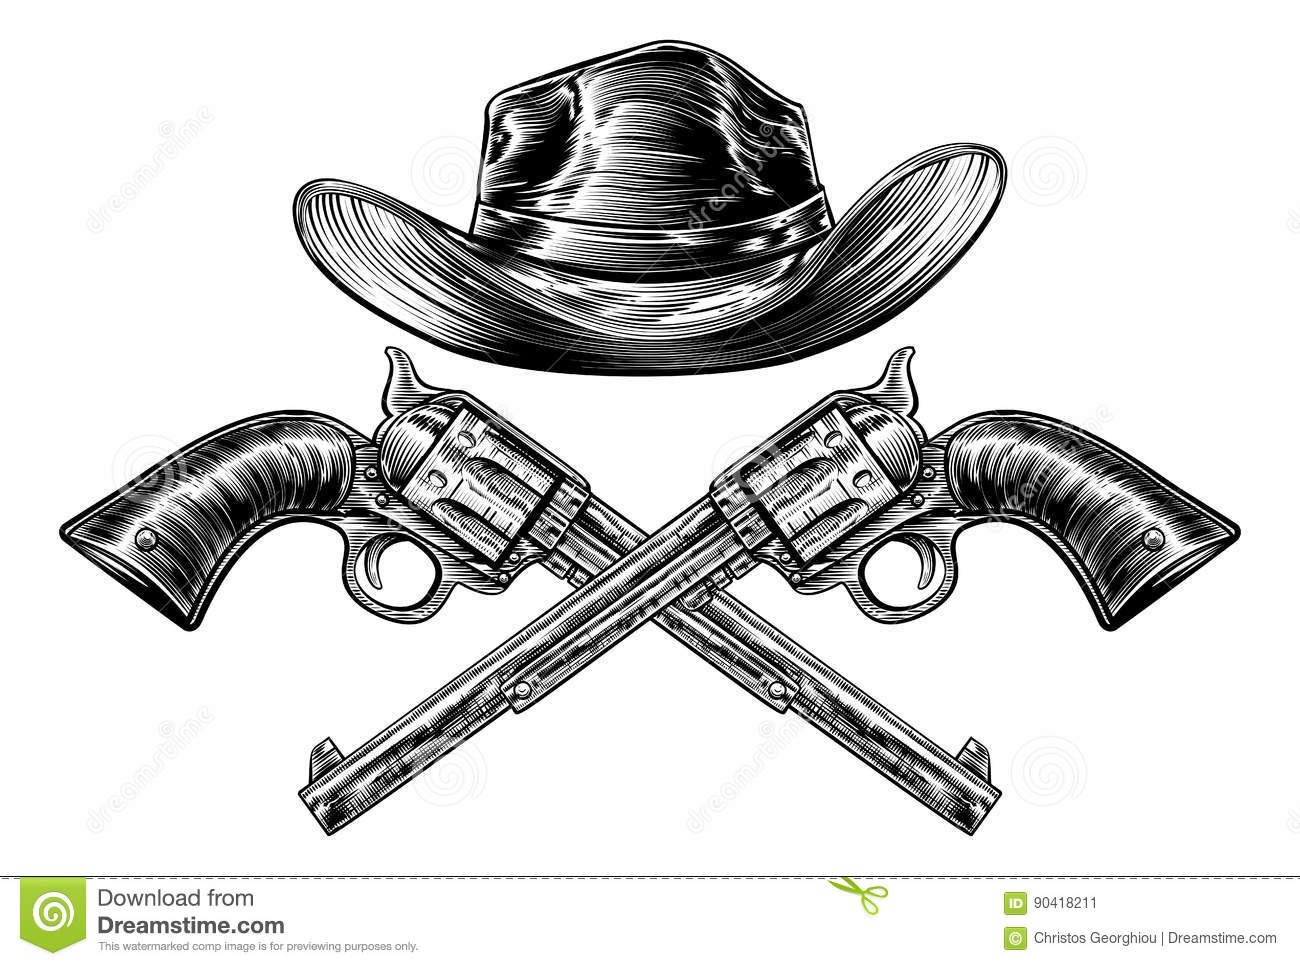 fe4774ad A cowboy western hat and pair of crossed pistol guns in a vintage etched  engraved style. Designers Also Selected These Stock Illustrations